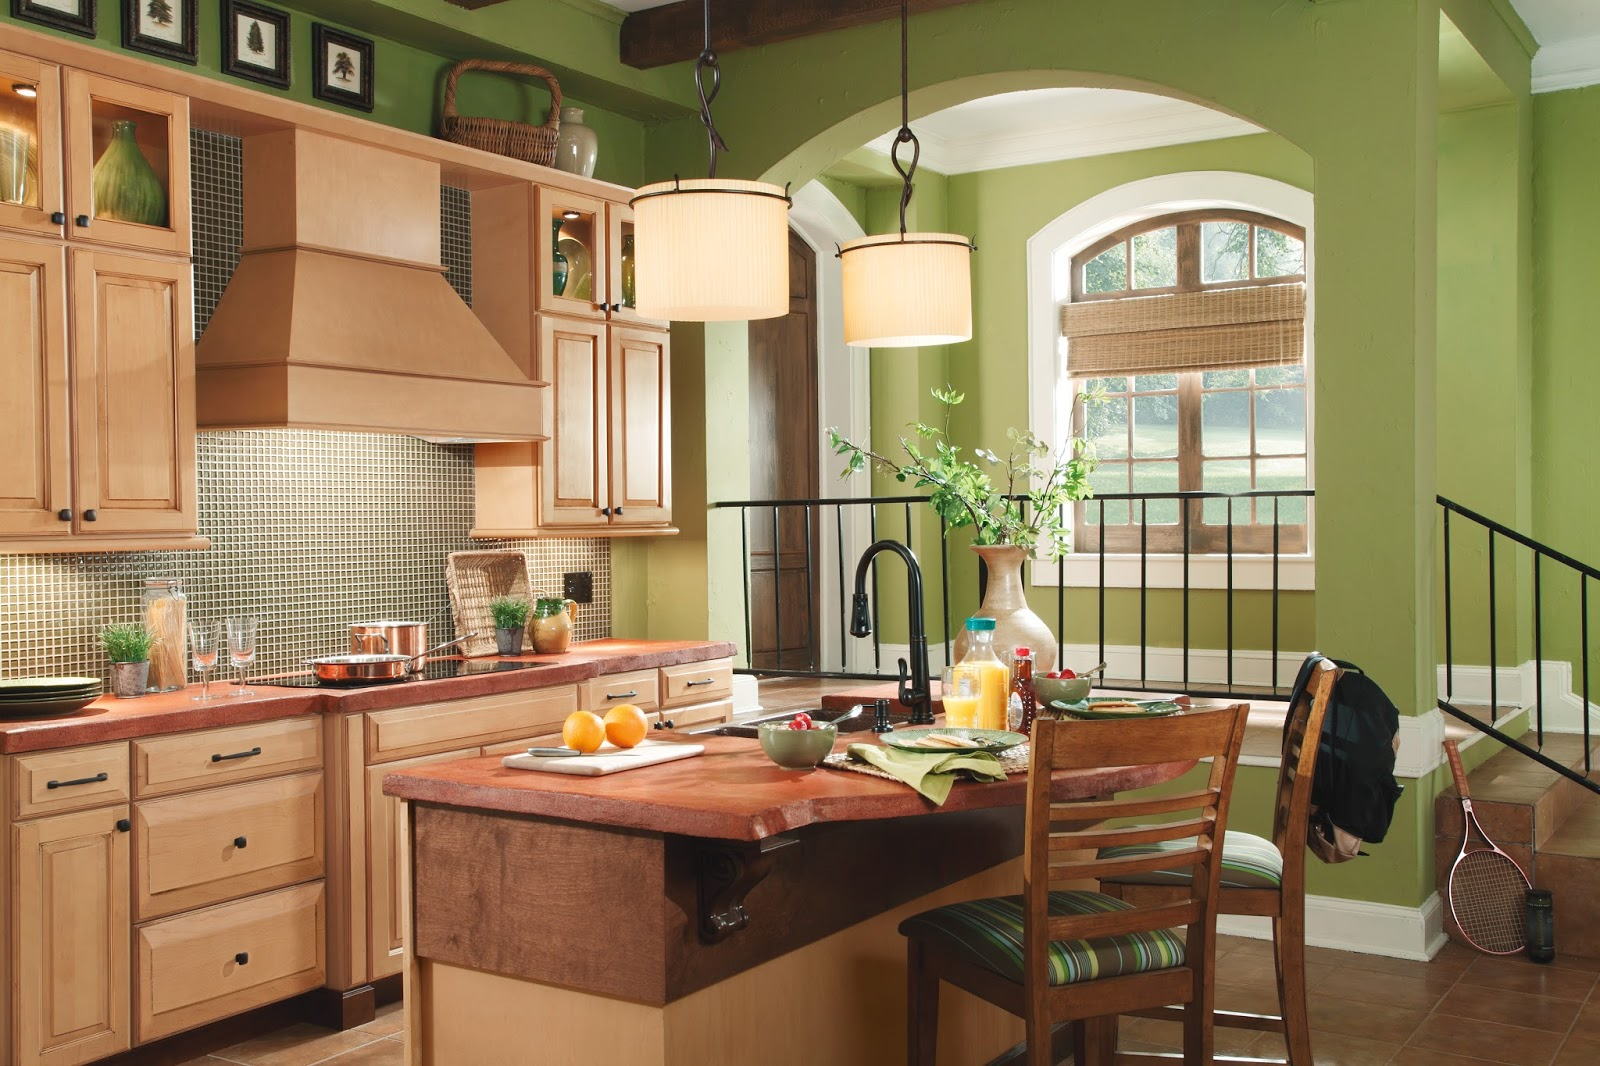 Waypoint Kitchen Cabinets Hotels With Kitchens Living Spaces 620d